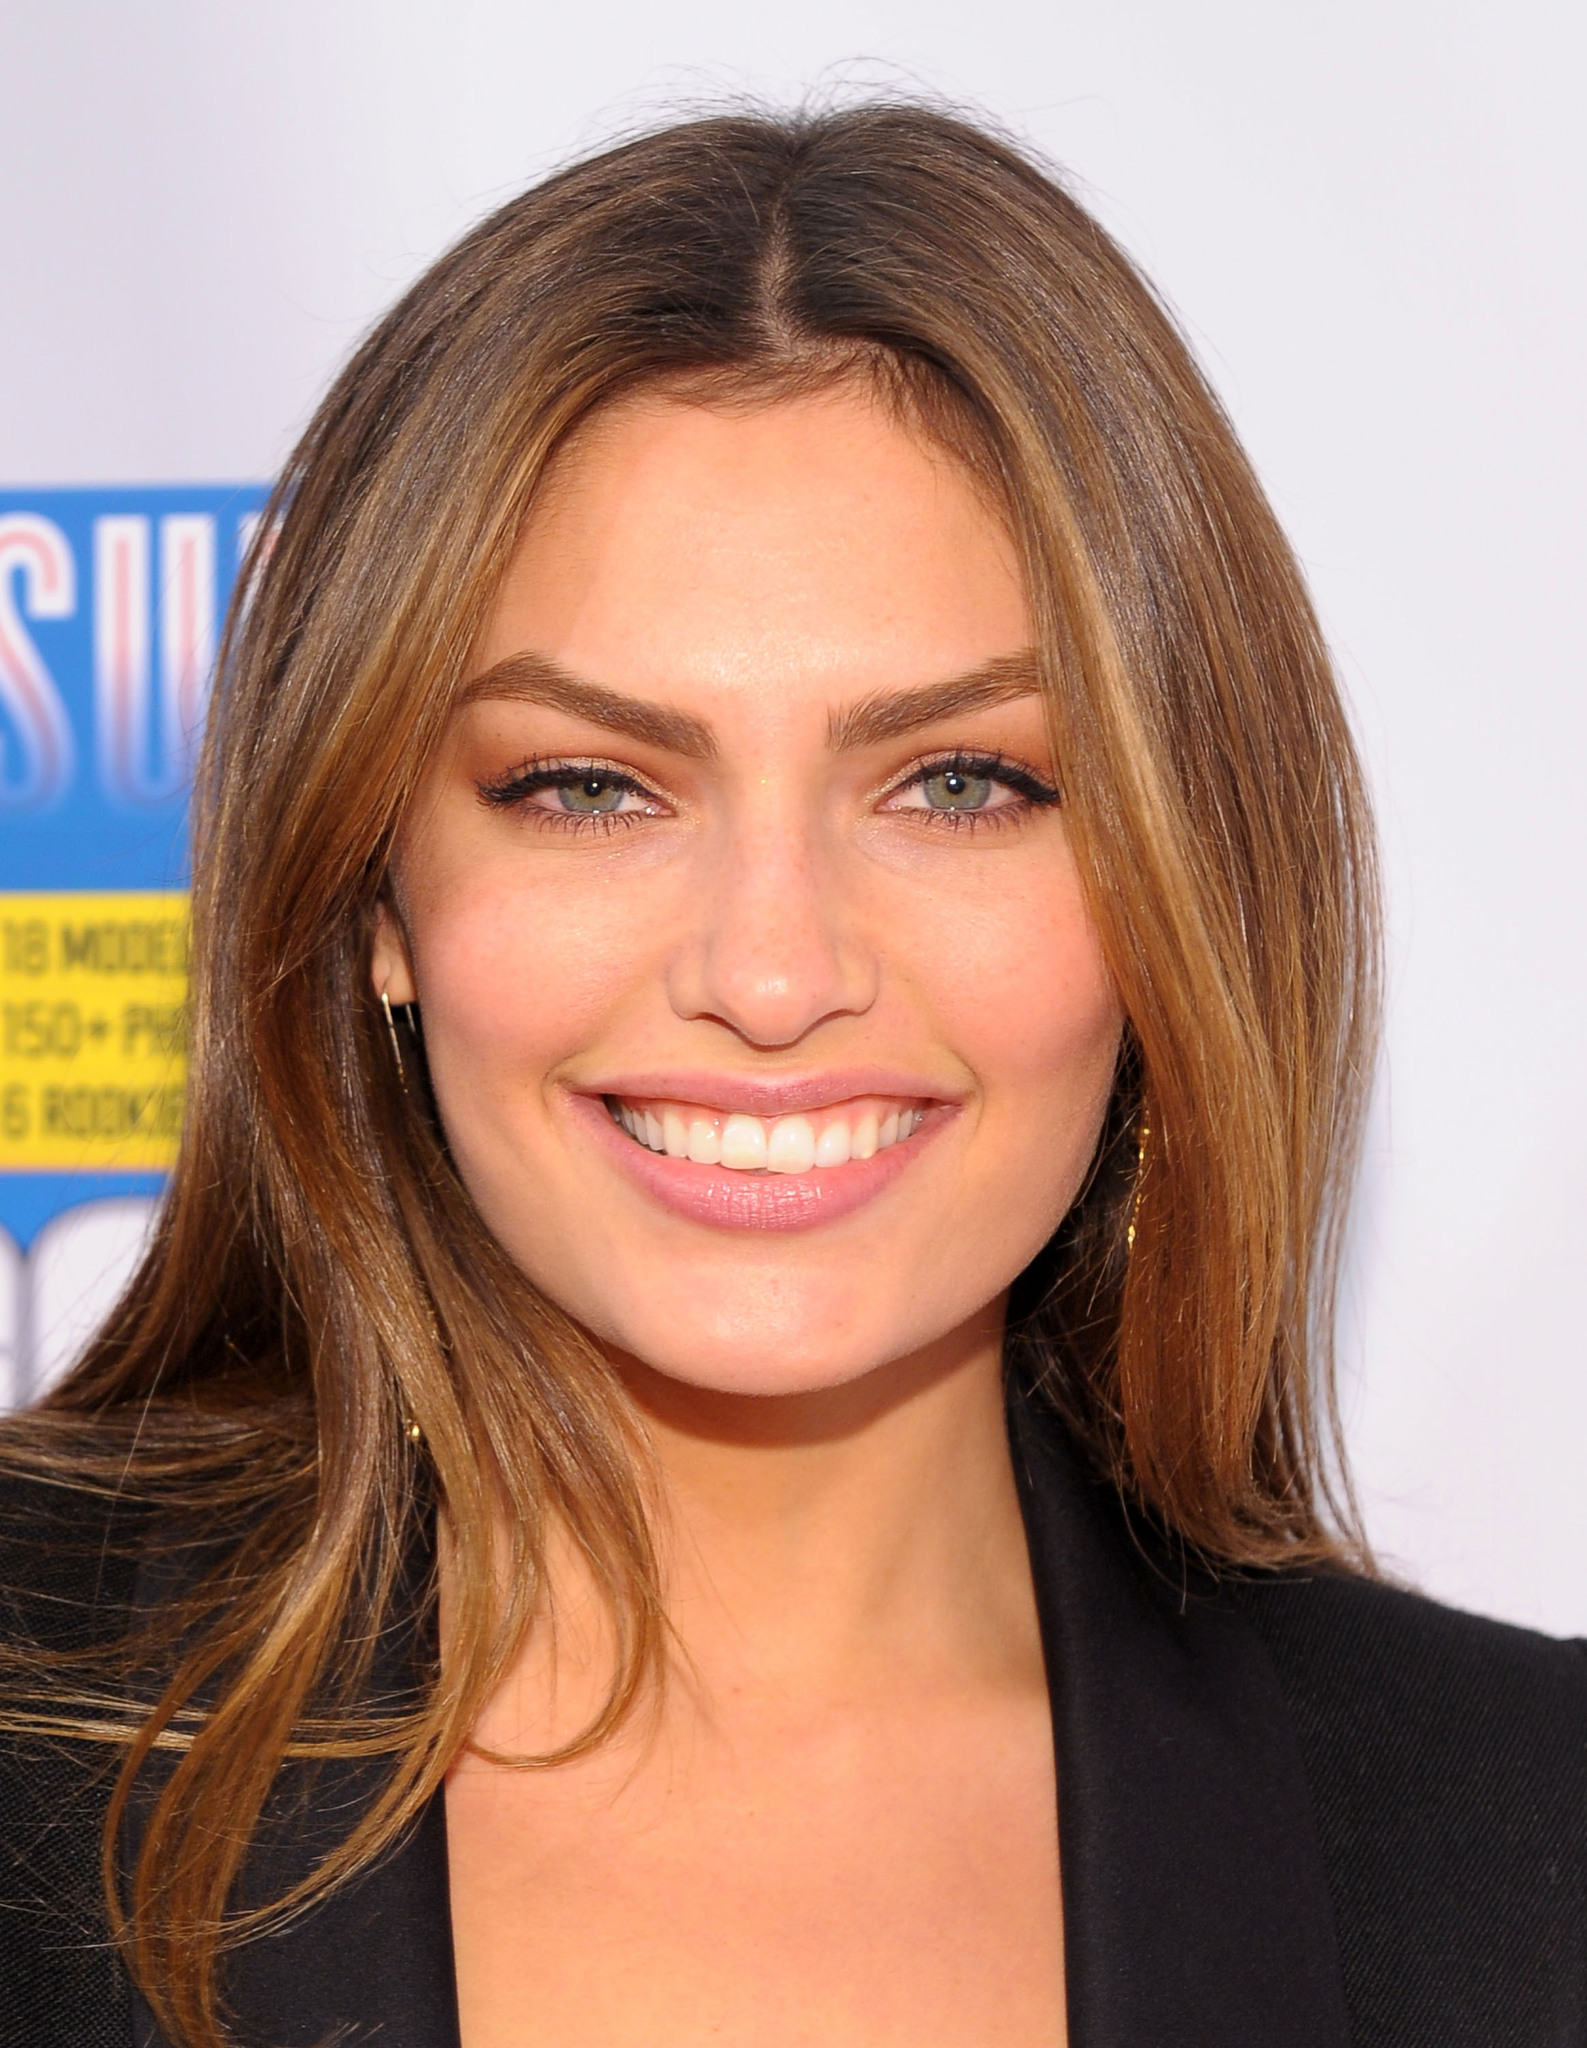 Watch Alyssa Miller USA video